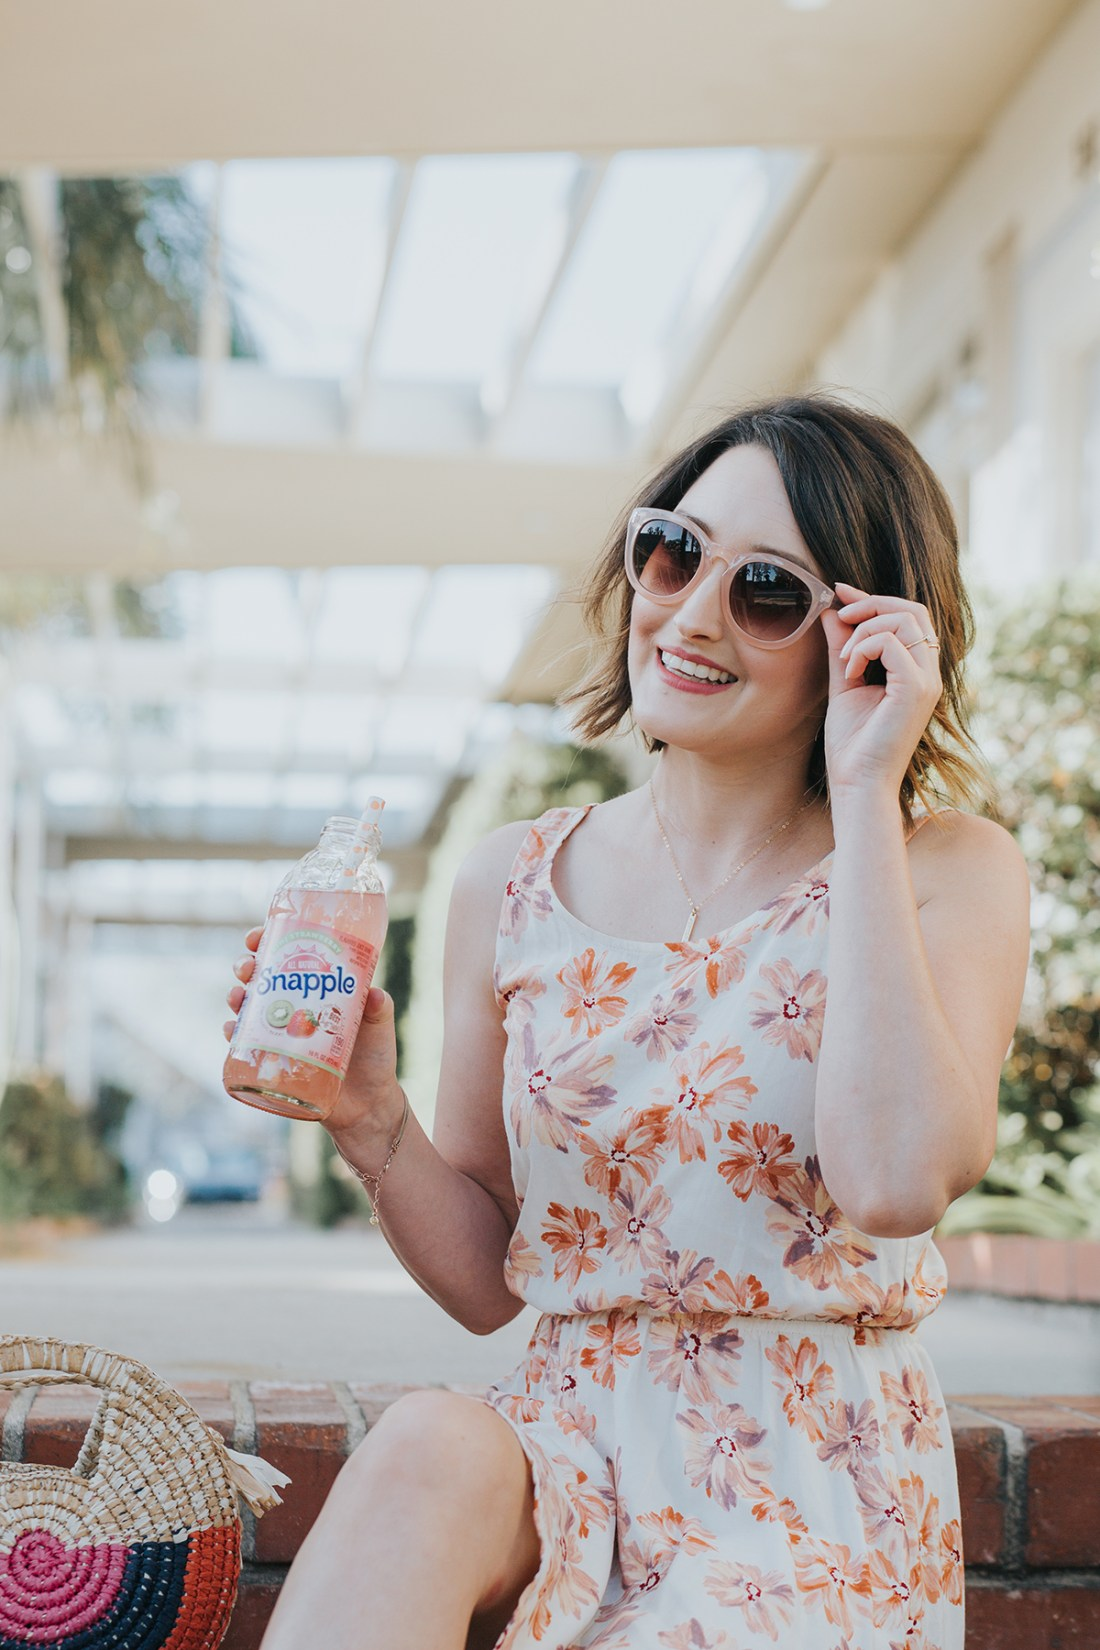 Afternoon Sips with Snapple at Kroger   A Good Hue #AmplifyOC